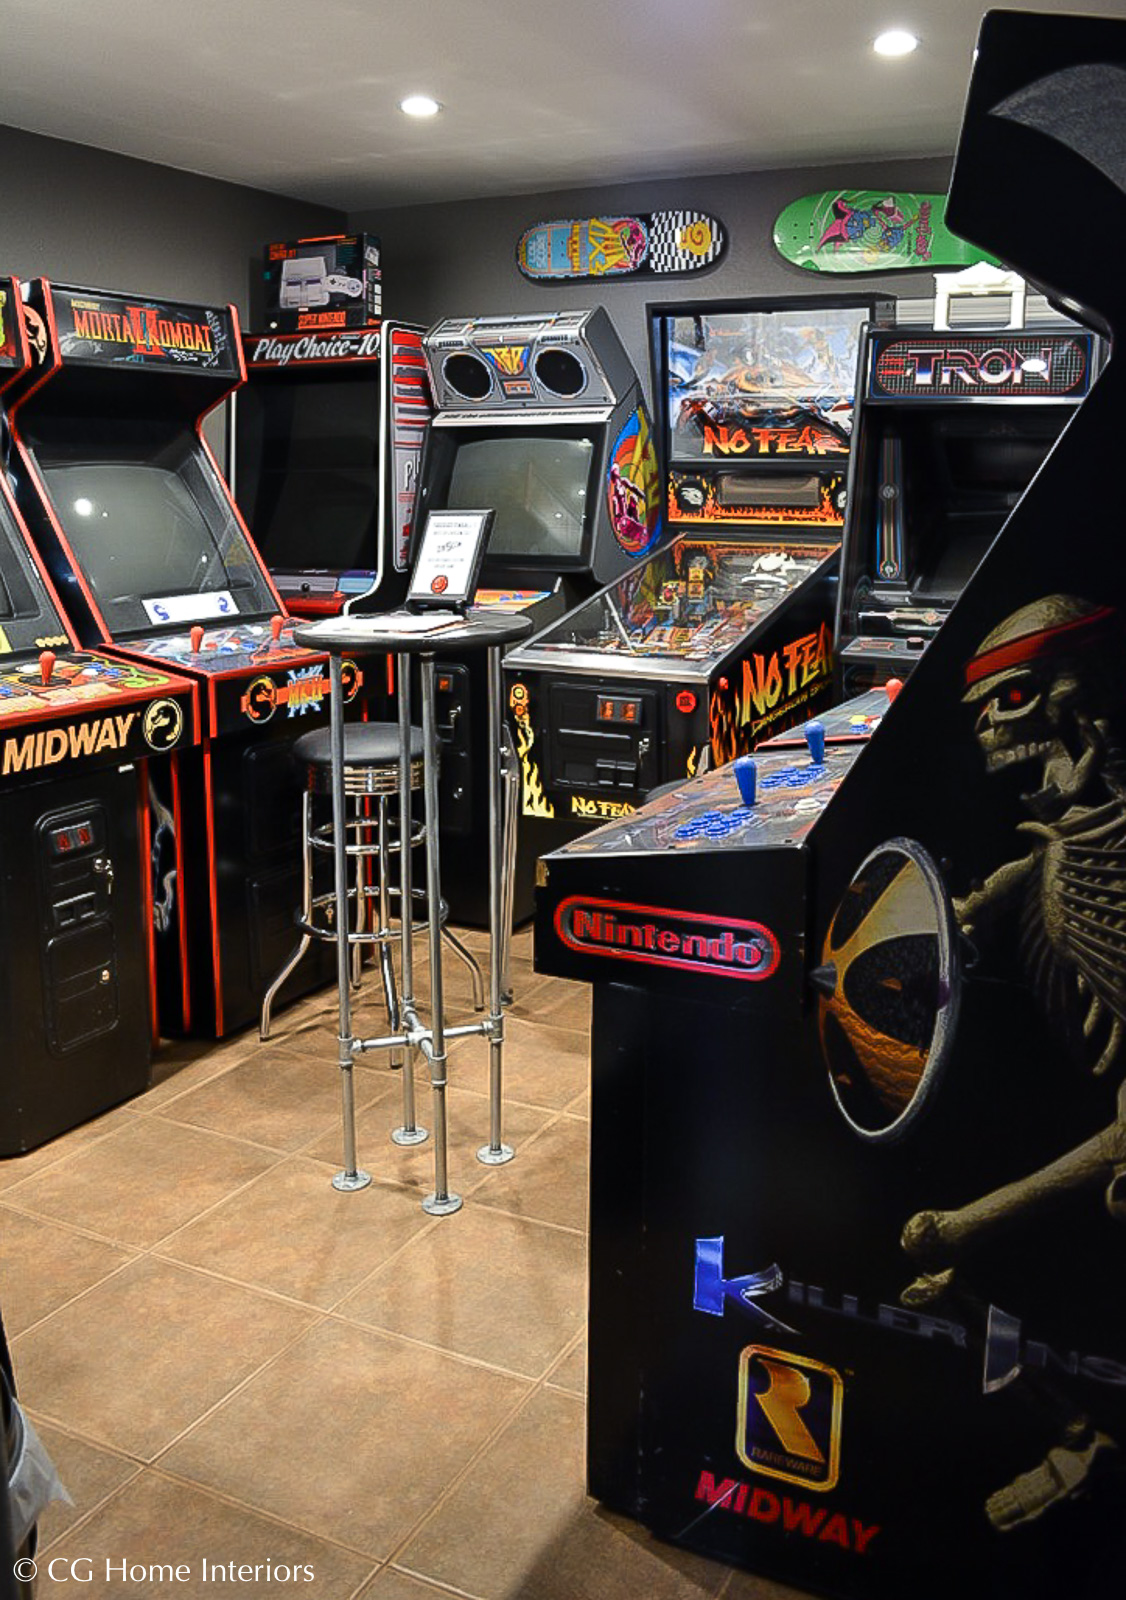 Shared laundry room and game room arcade